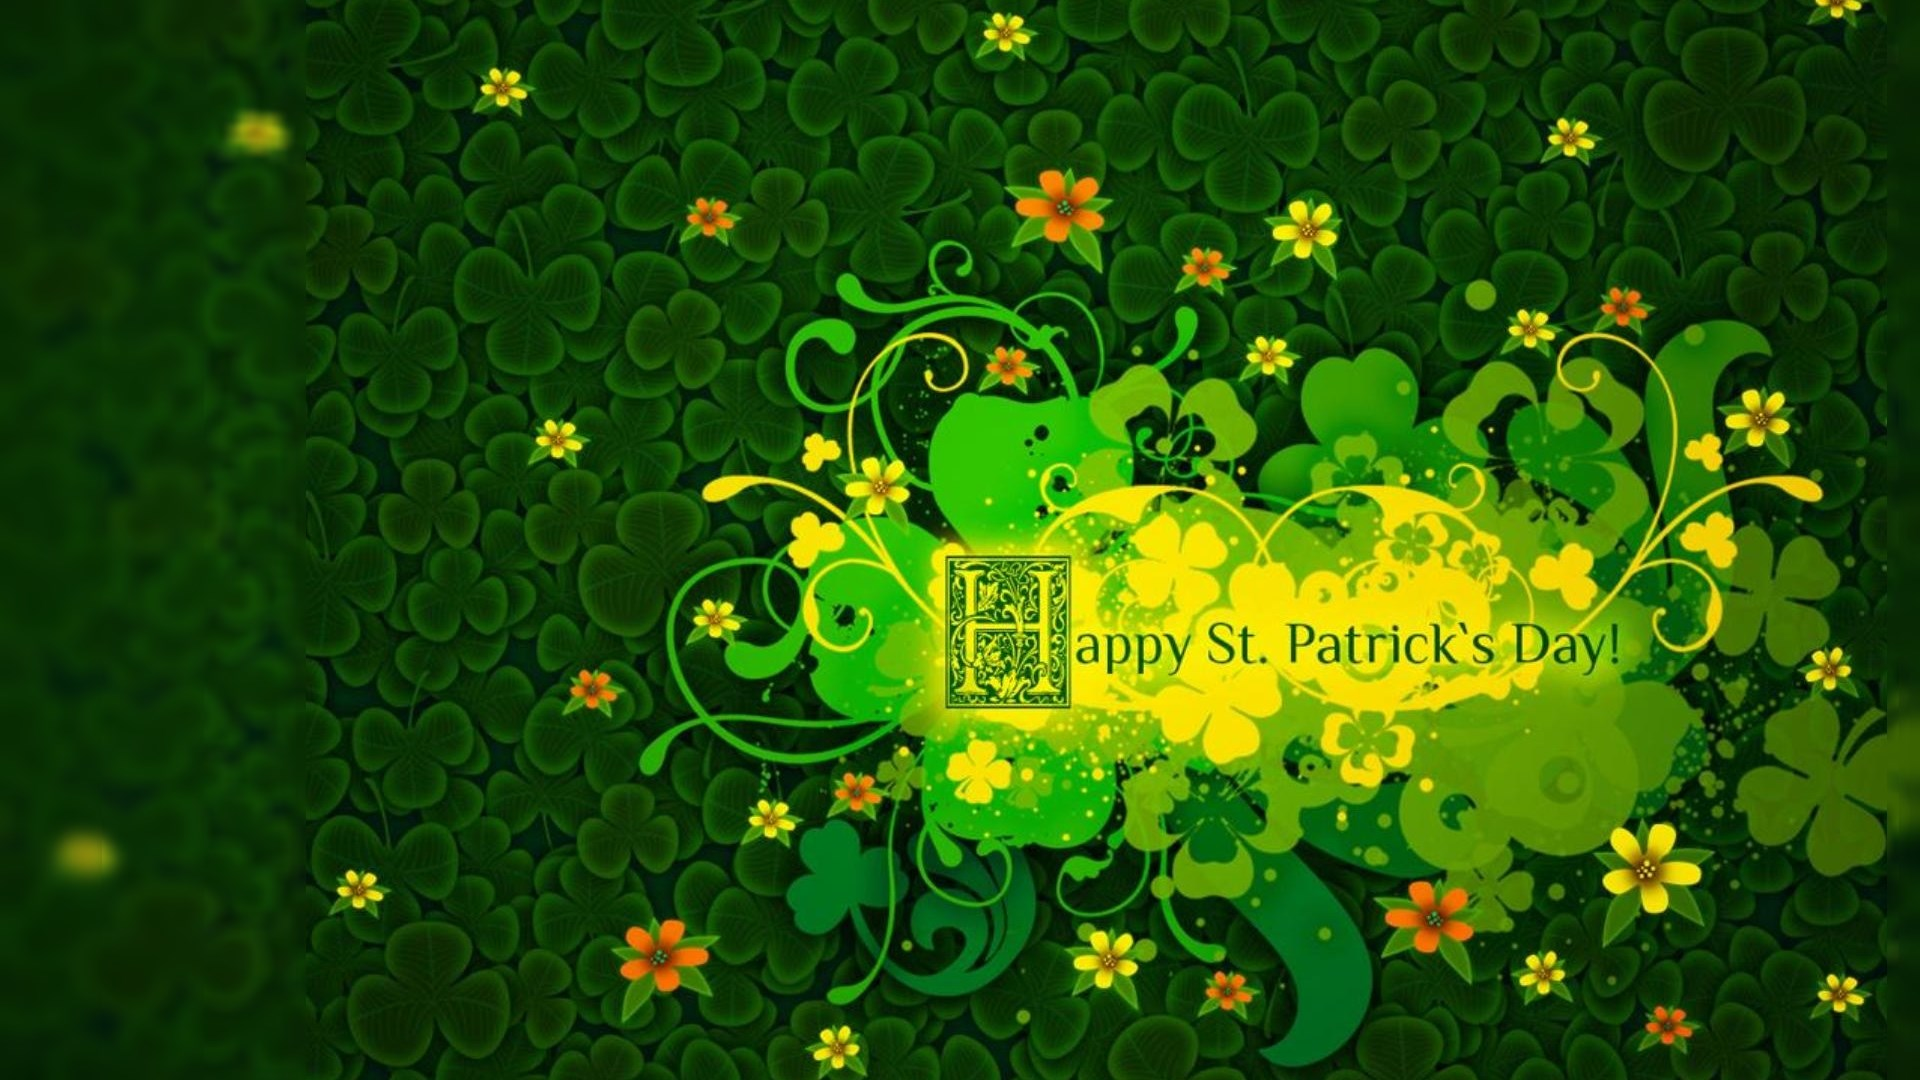 Fenton-MacDonald-st-patricks-day-images-for-backgrounds-desktop-free-1920-x-1080-px-wallpaper-wpc9004902